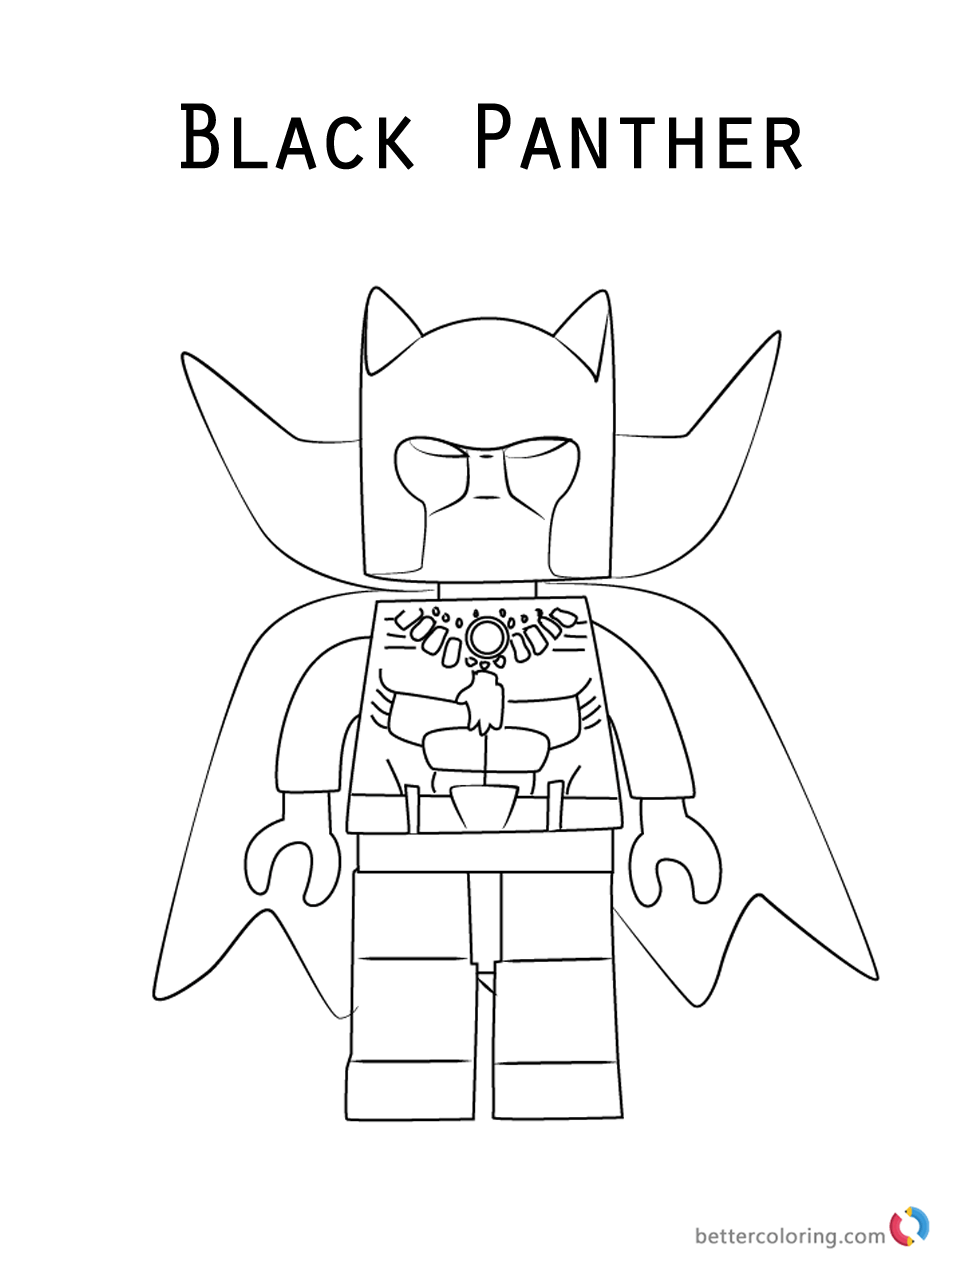 20 Free Printable Black Panther Coloring Pages Coloring Junction